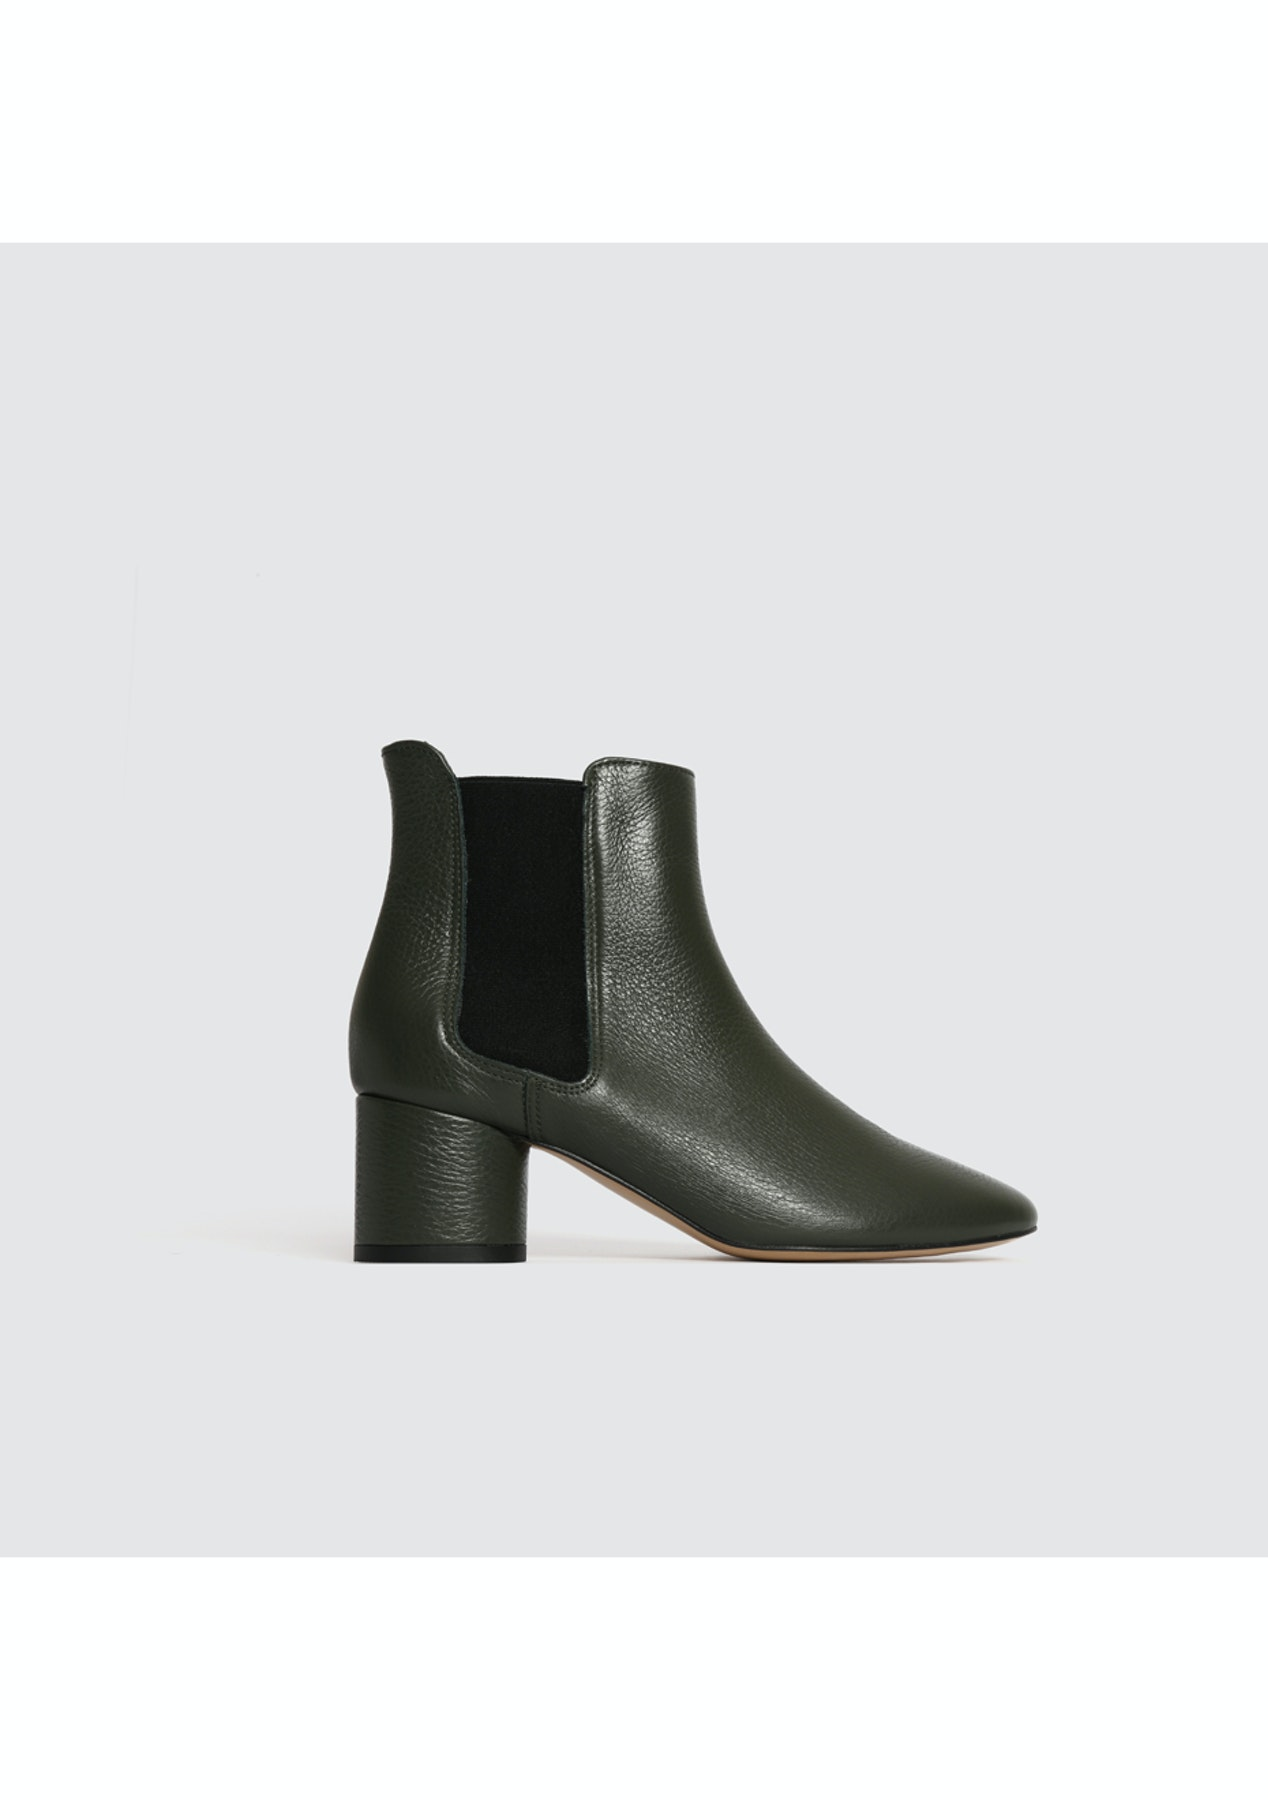 87468fde293 L37 - Rocket Chelsea Boots - Green - PRESALE Loft37 - Best Sellers Back in  Stock - Onceit